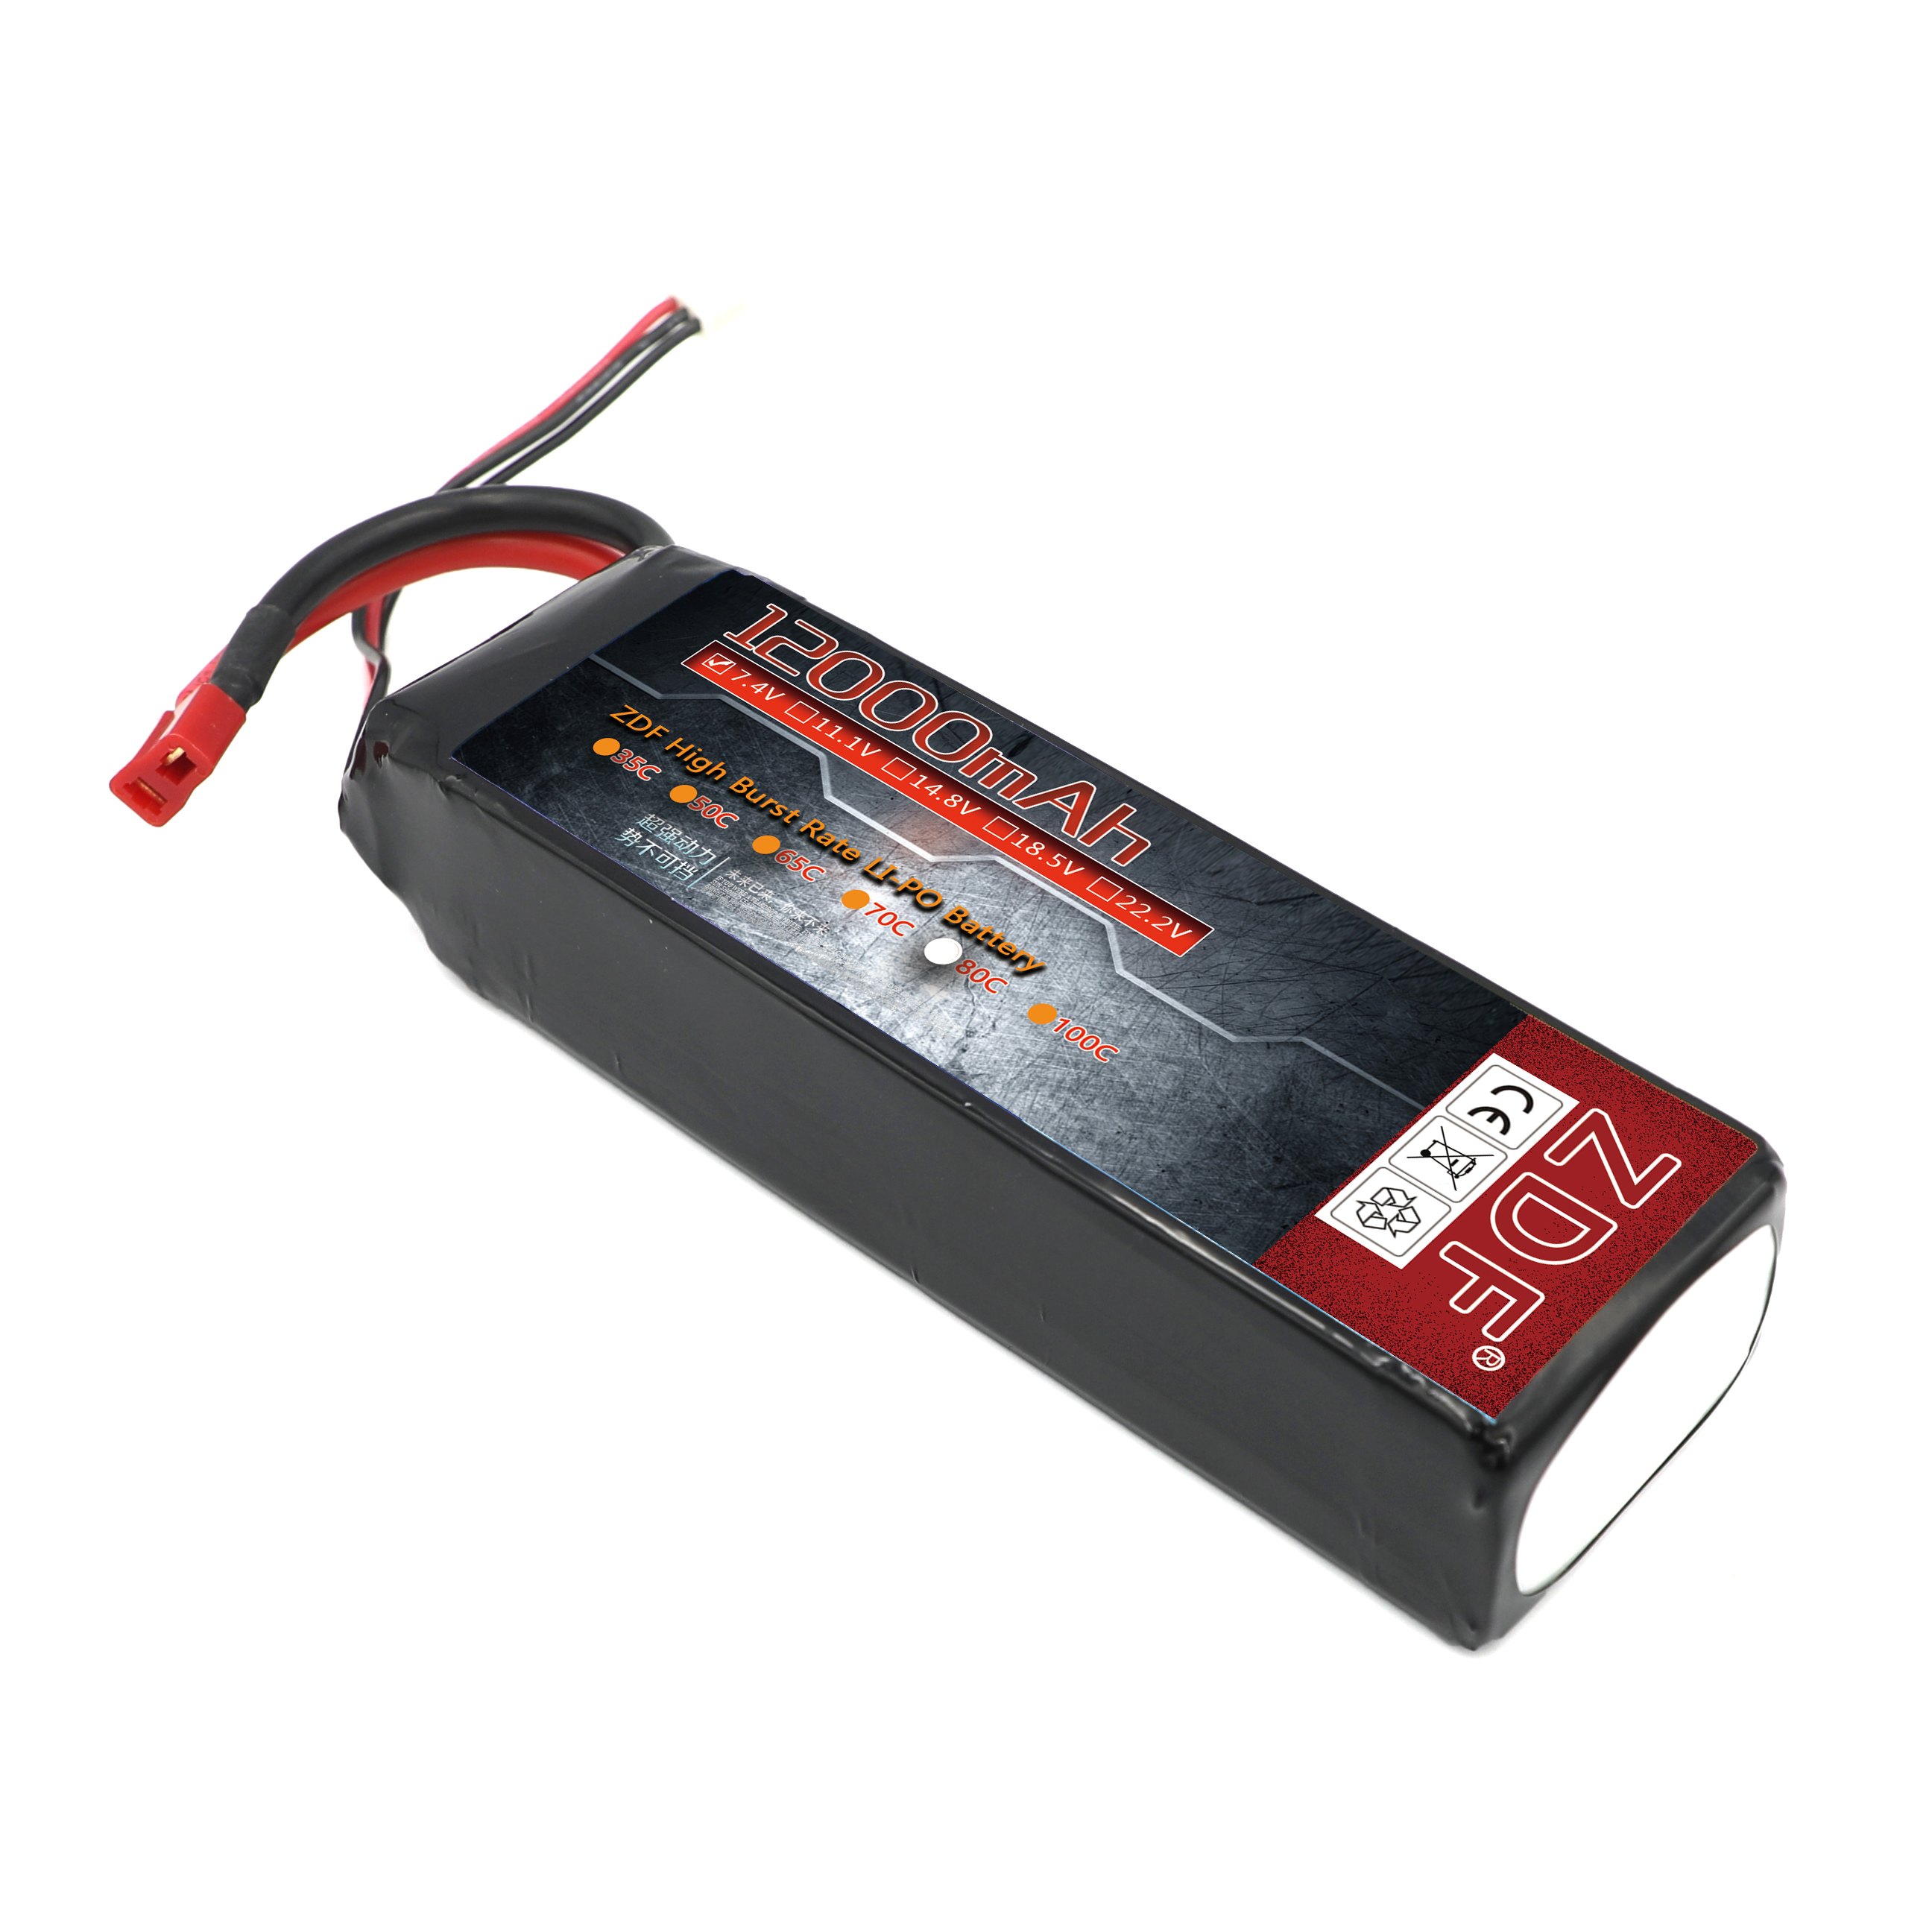 ZDF 7.4V RC Lipo Battery 12000mAh RC Battery 80C Battery lipo 2s Rechargeable Battery for racer racing RC Car Boat Truck image